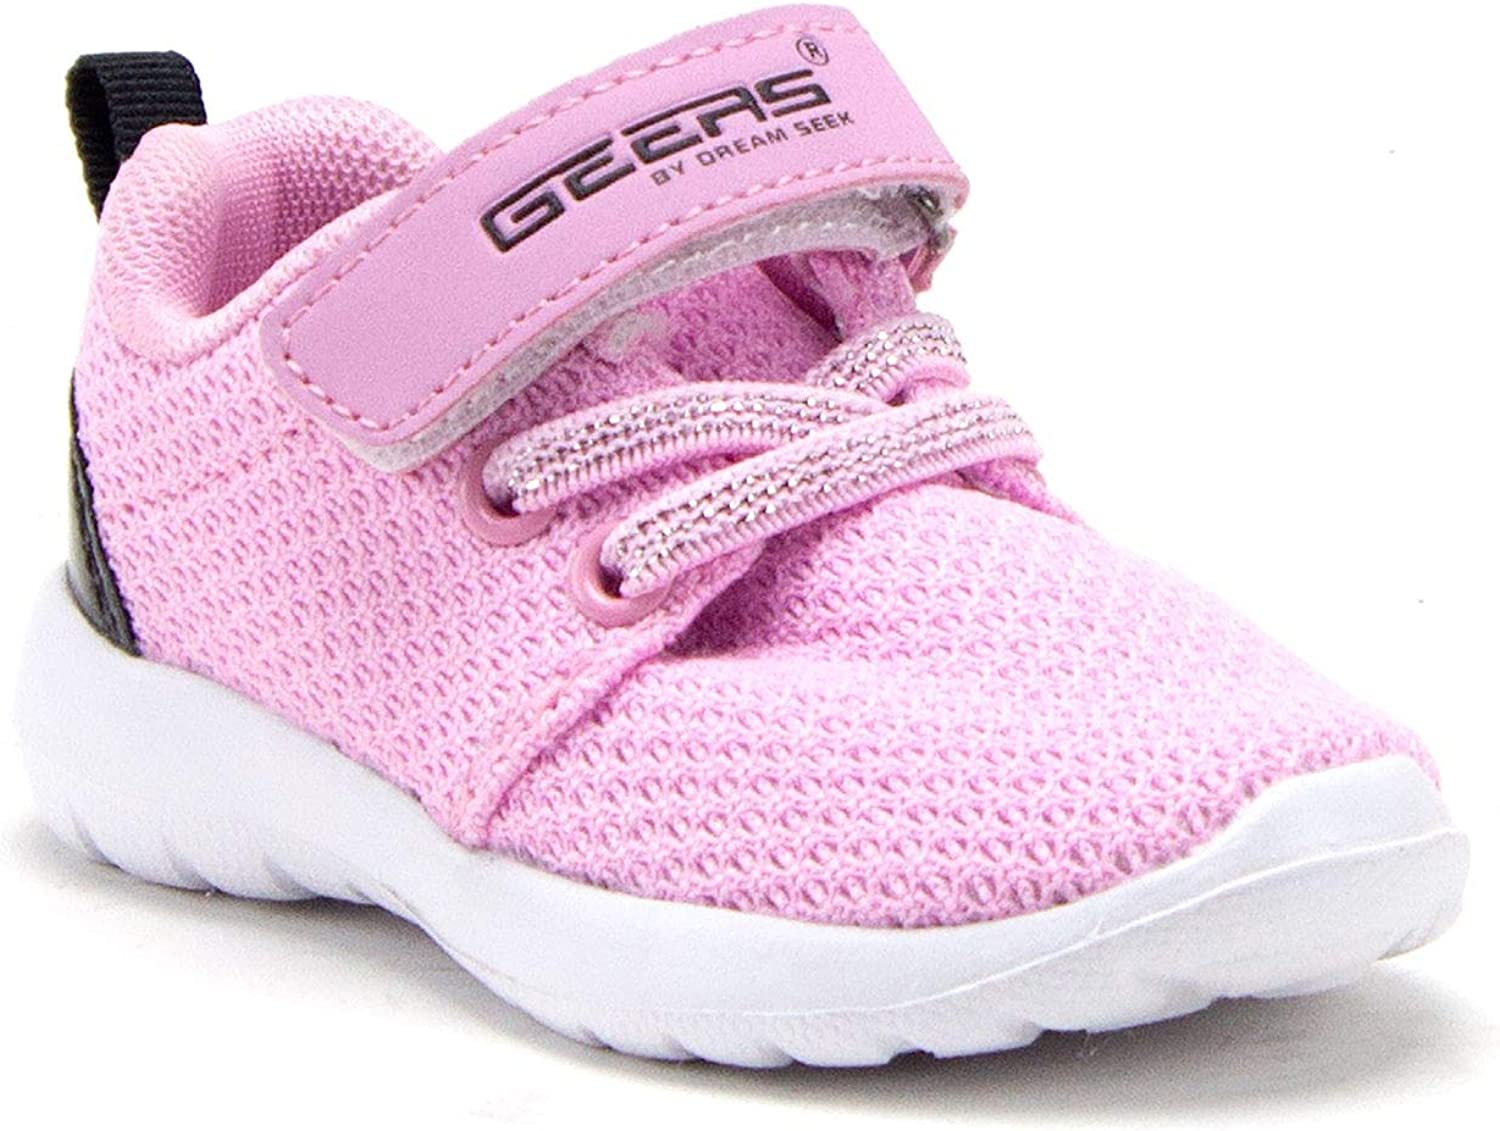 Sneakers Casual Sports Running Shoes